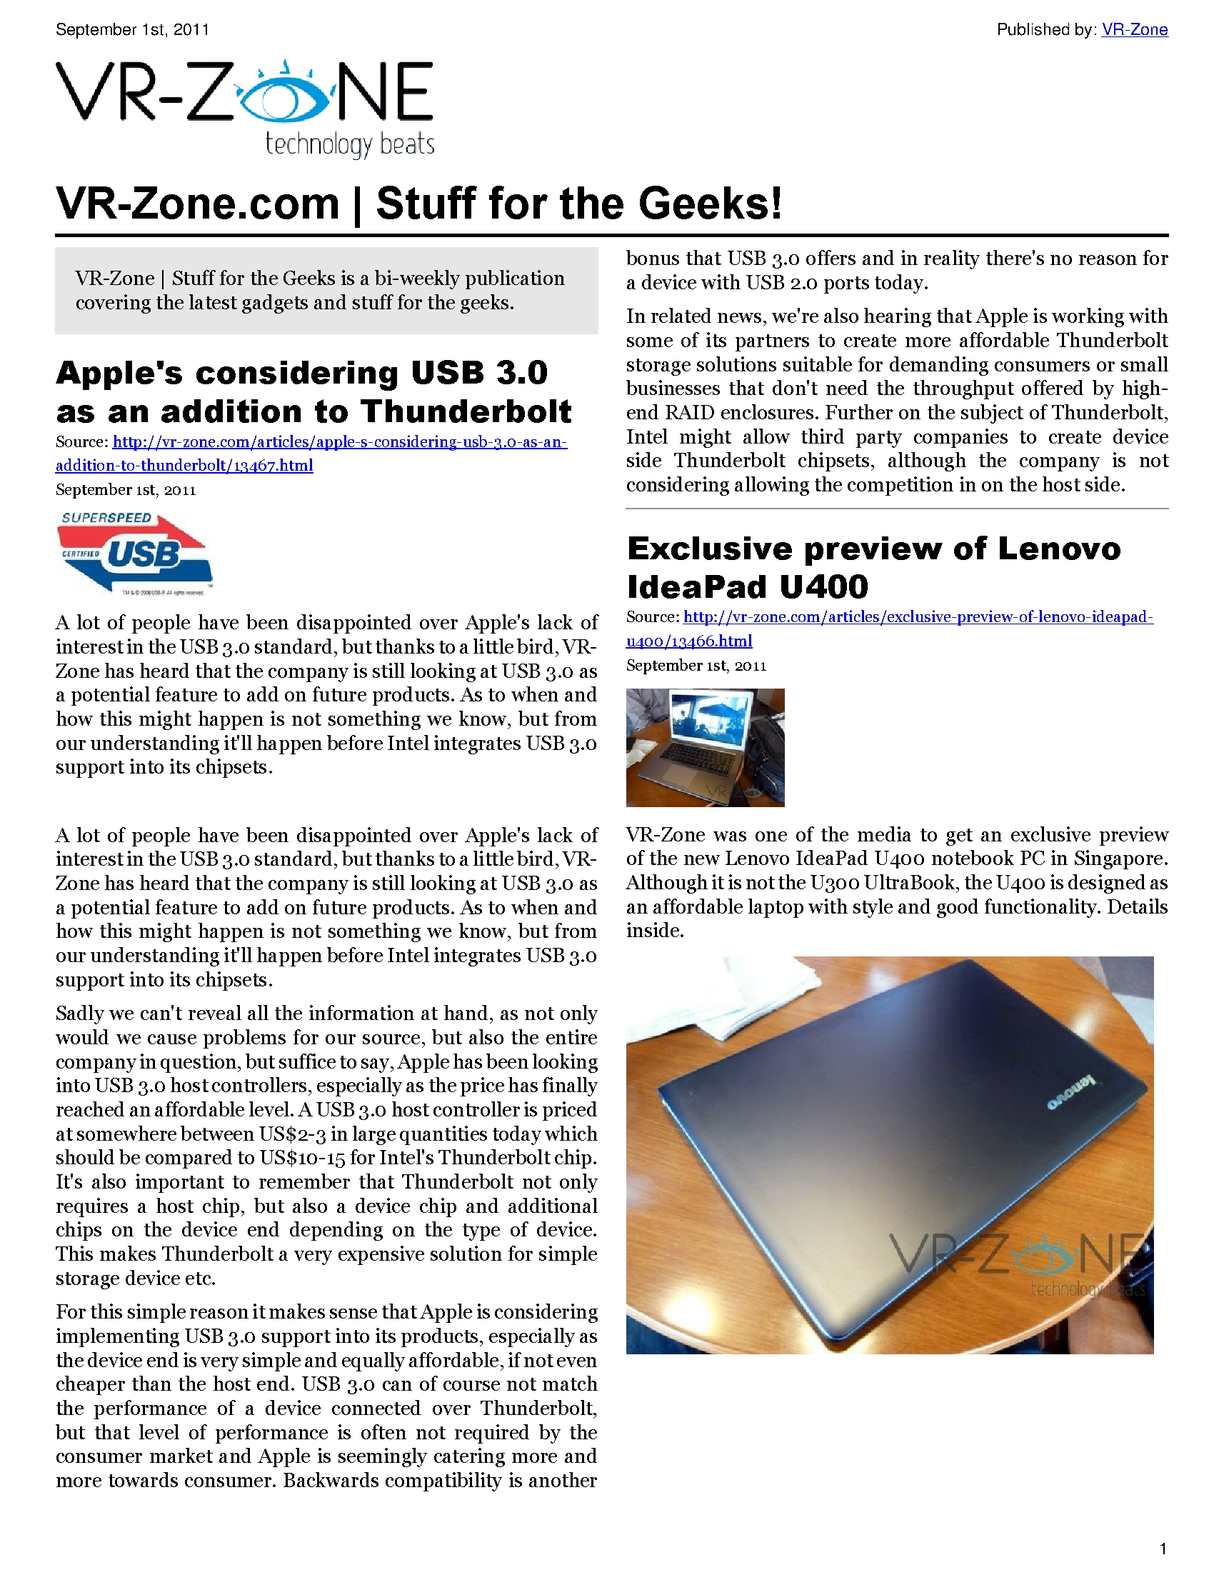 Calamo Vr Zone Tech News For The Geeks Sep 2011 Issue Checking Power Mosfet With Simple Tester Savel Brain Dump In English